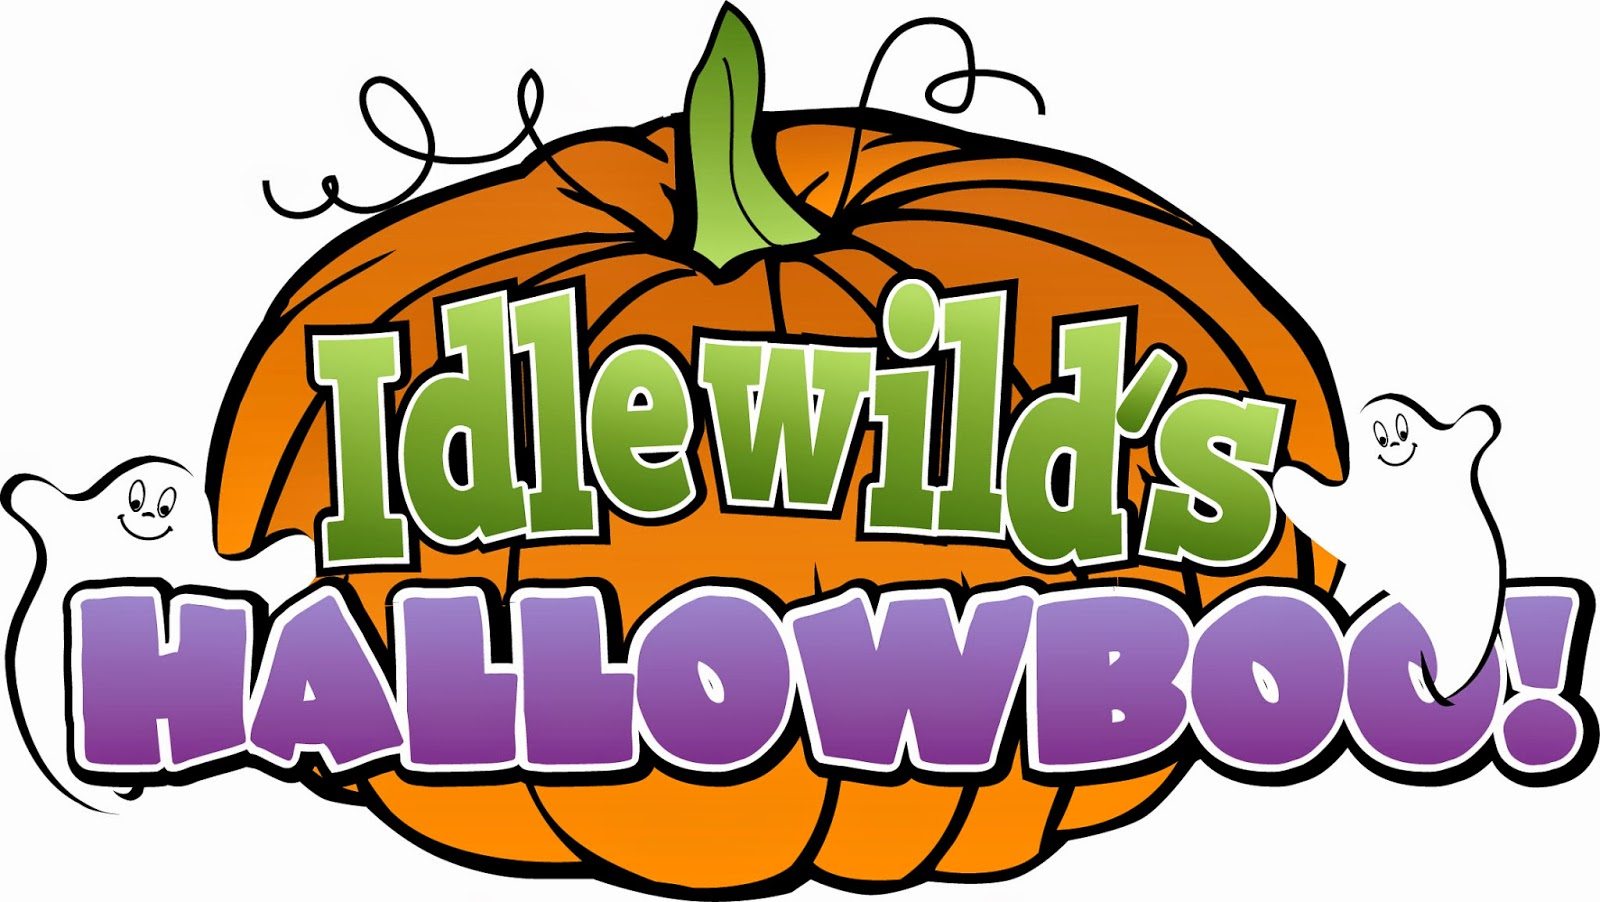 Idlewild discount coupons